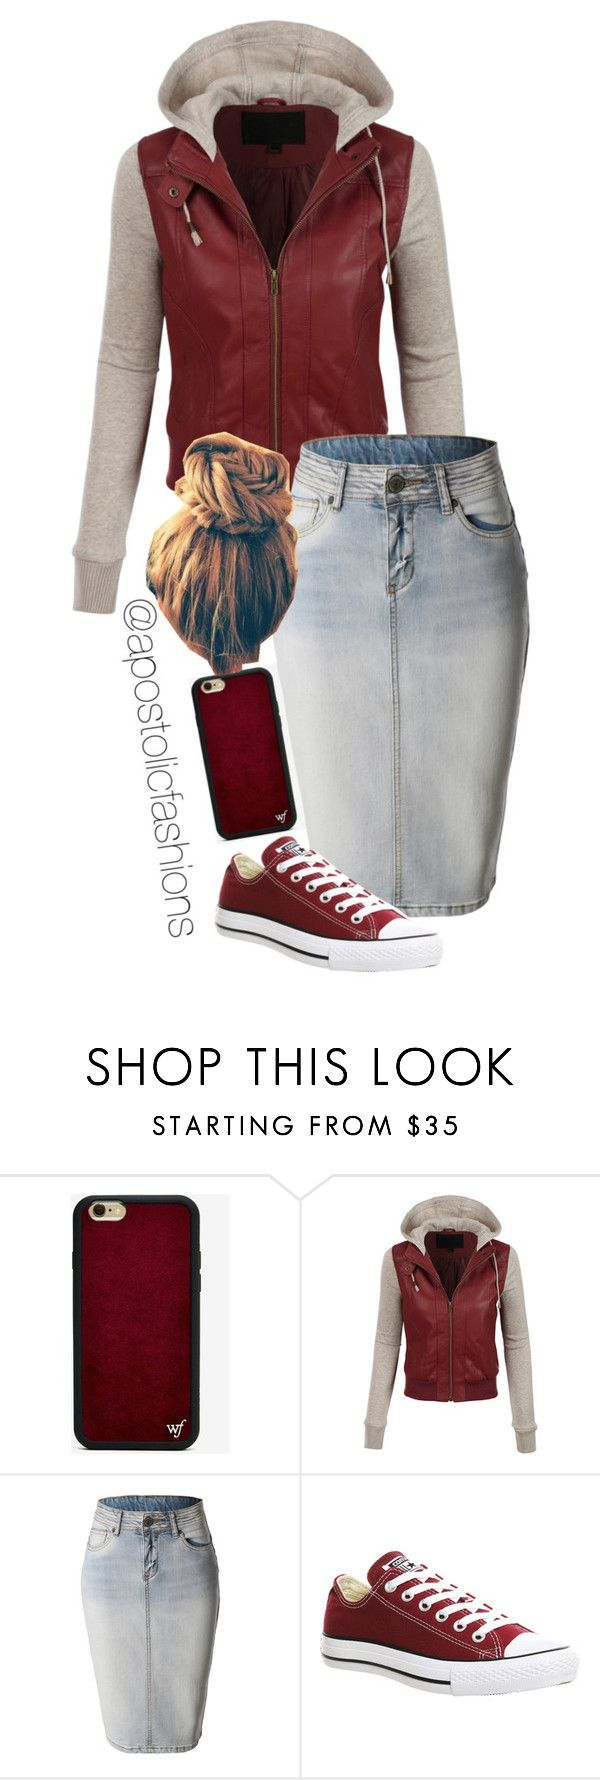 """""""Apostolic Fashions #975"""" by apostolicfashions on Polyvore featuring Wildflower, LE3NO and Converse"""